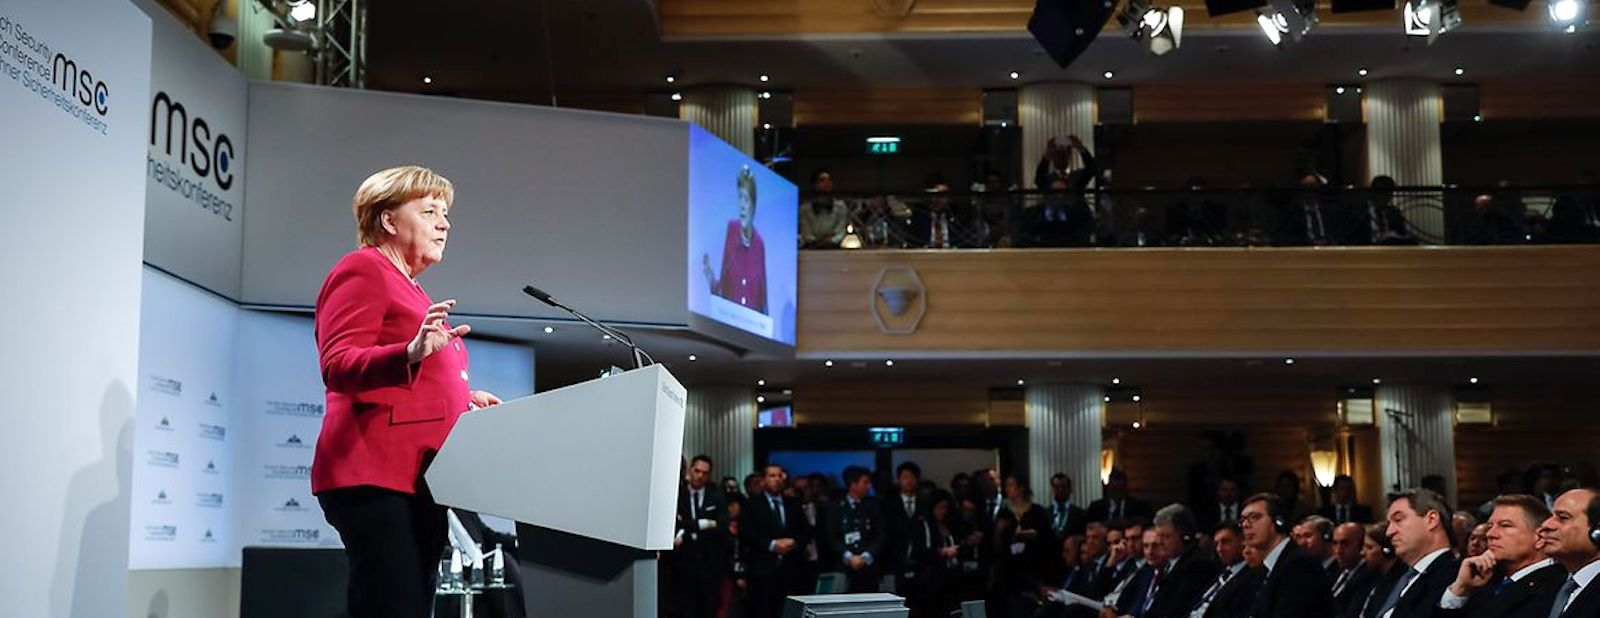 German Chancellor Angela Merkel speaks at the Munich Security Conference (Photo: Bundesregierung/Denzel)